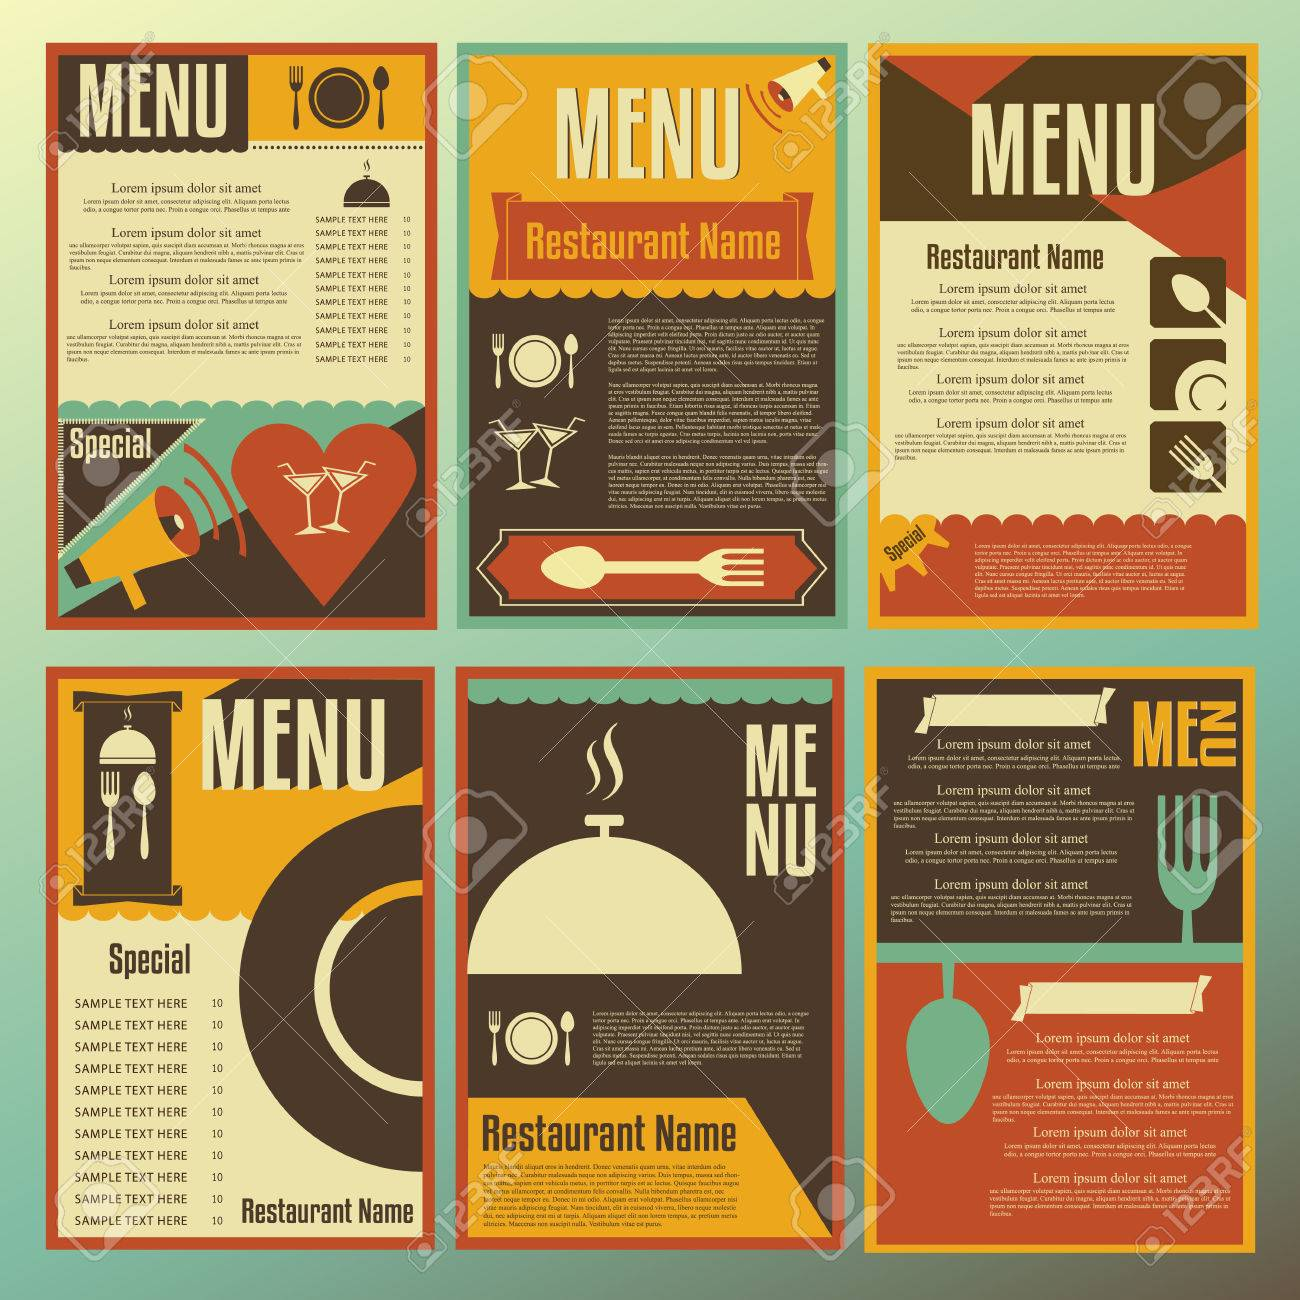 Restaurant Menu Designs Collection Of Retro Style Vector Illustrations Royalty Free Cliparts Vectors And Stock Illustration Image 30480870